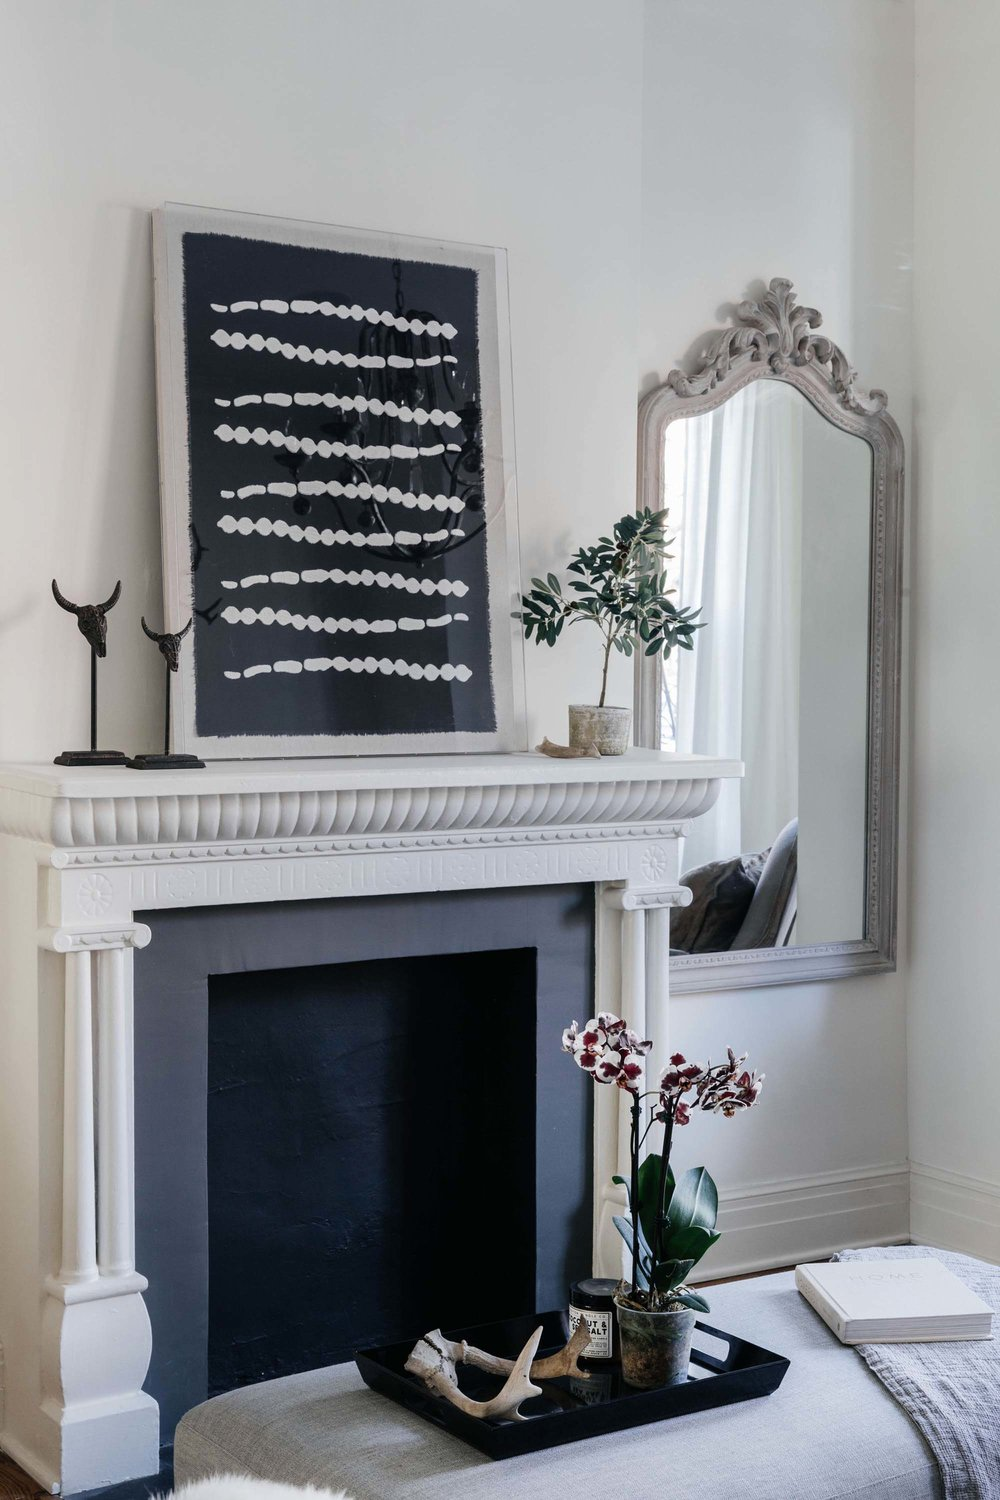 Fireplace with art resting above